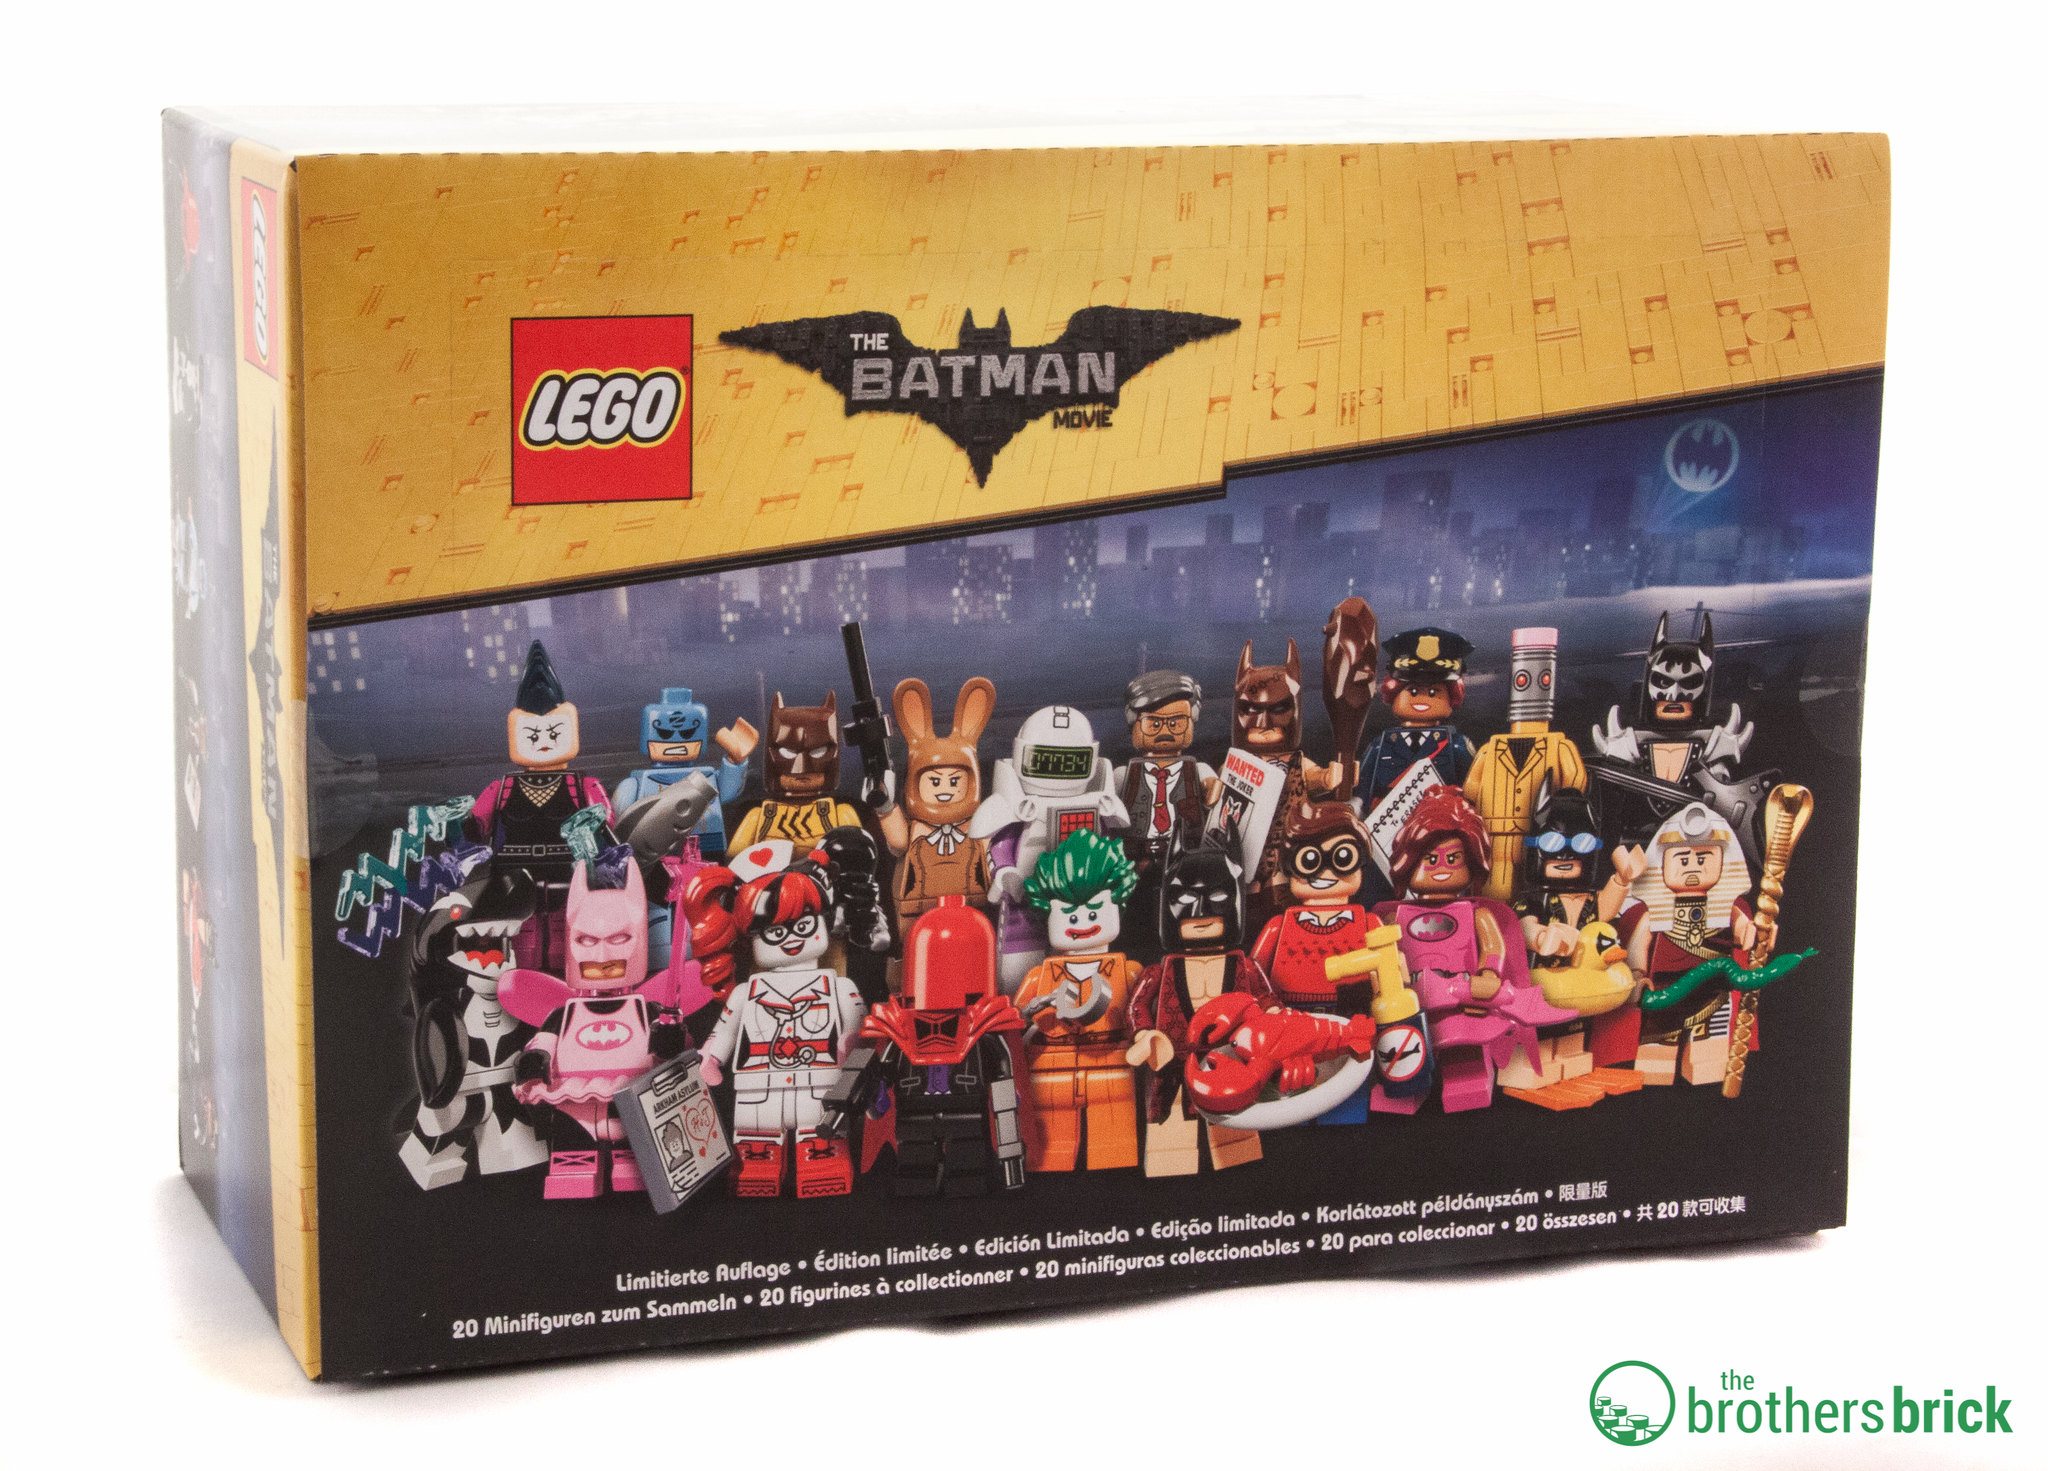 The Lego Batman Movie Collectible Minifigures Feel Guide